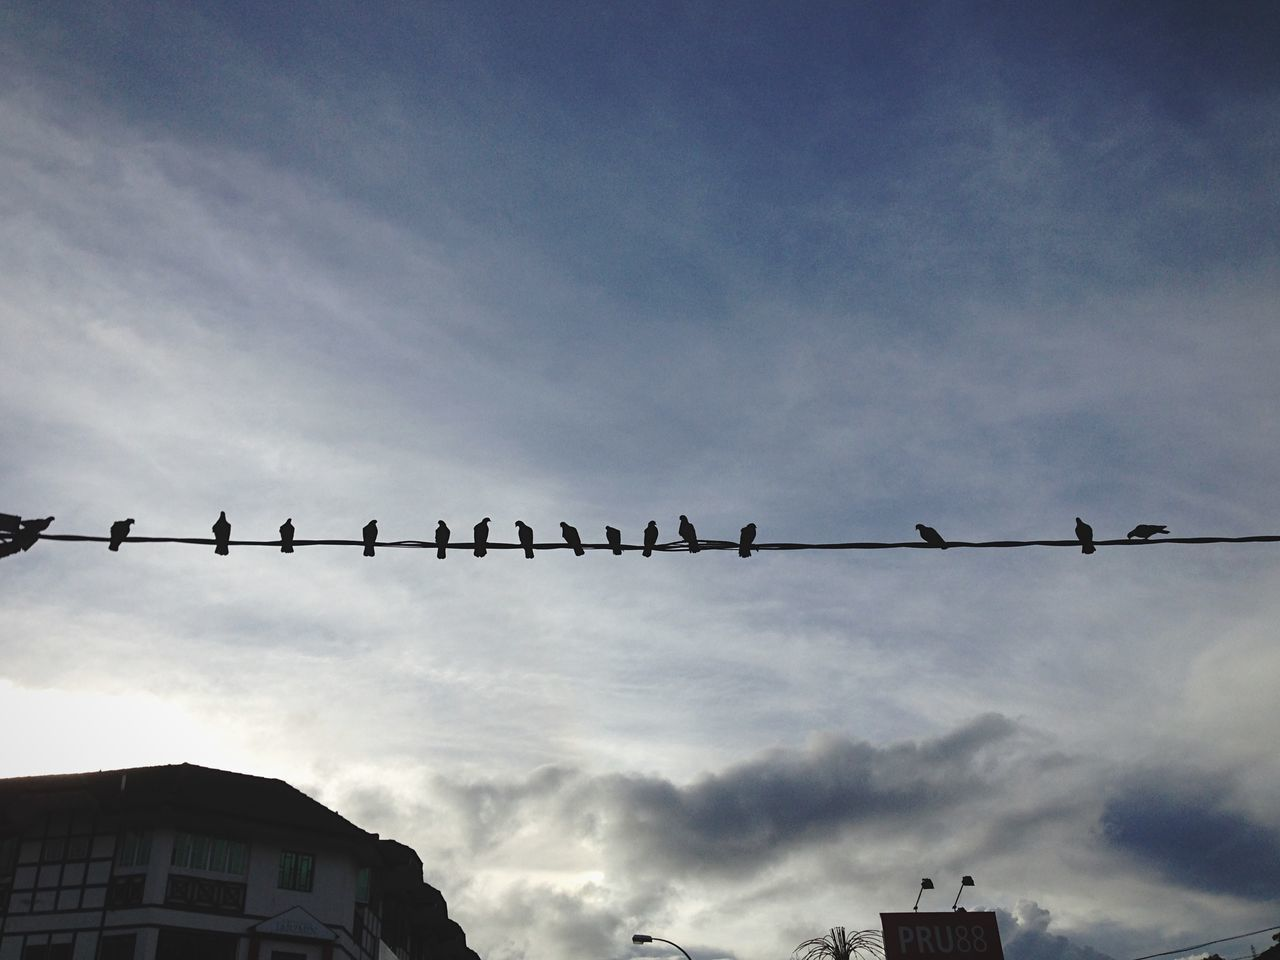 Birds on a wire Malaysia Tanah Rata Sky Morning Birds Wire Cameron Highlands Lining Up